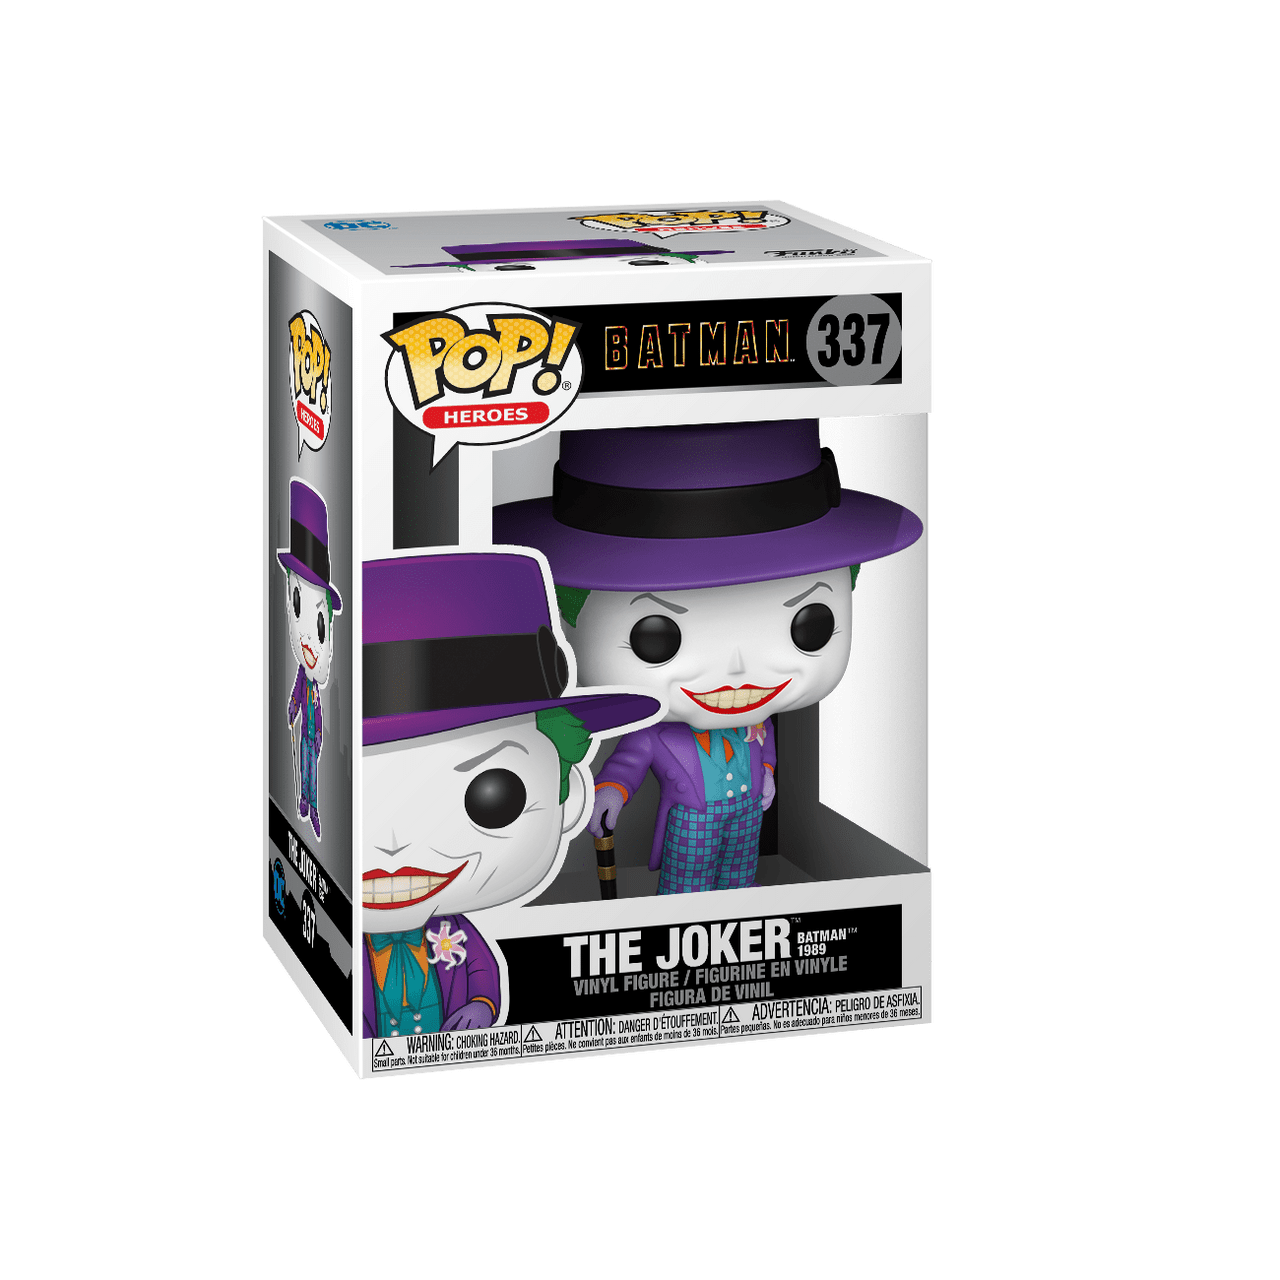 POP! Heroes ~ Batman 1989 ~ The Joker #337